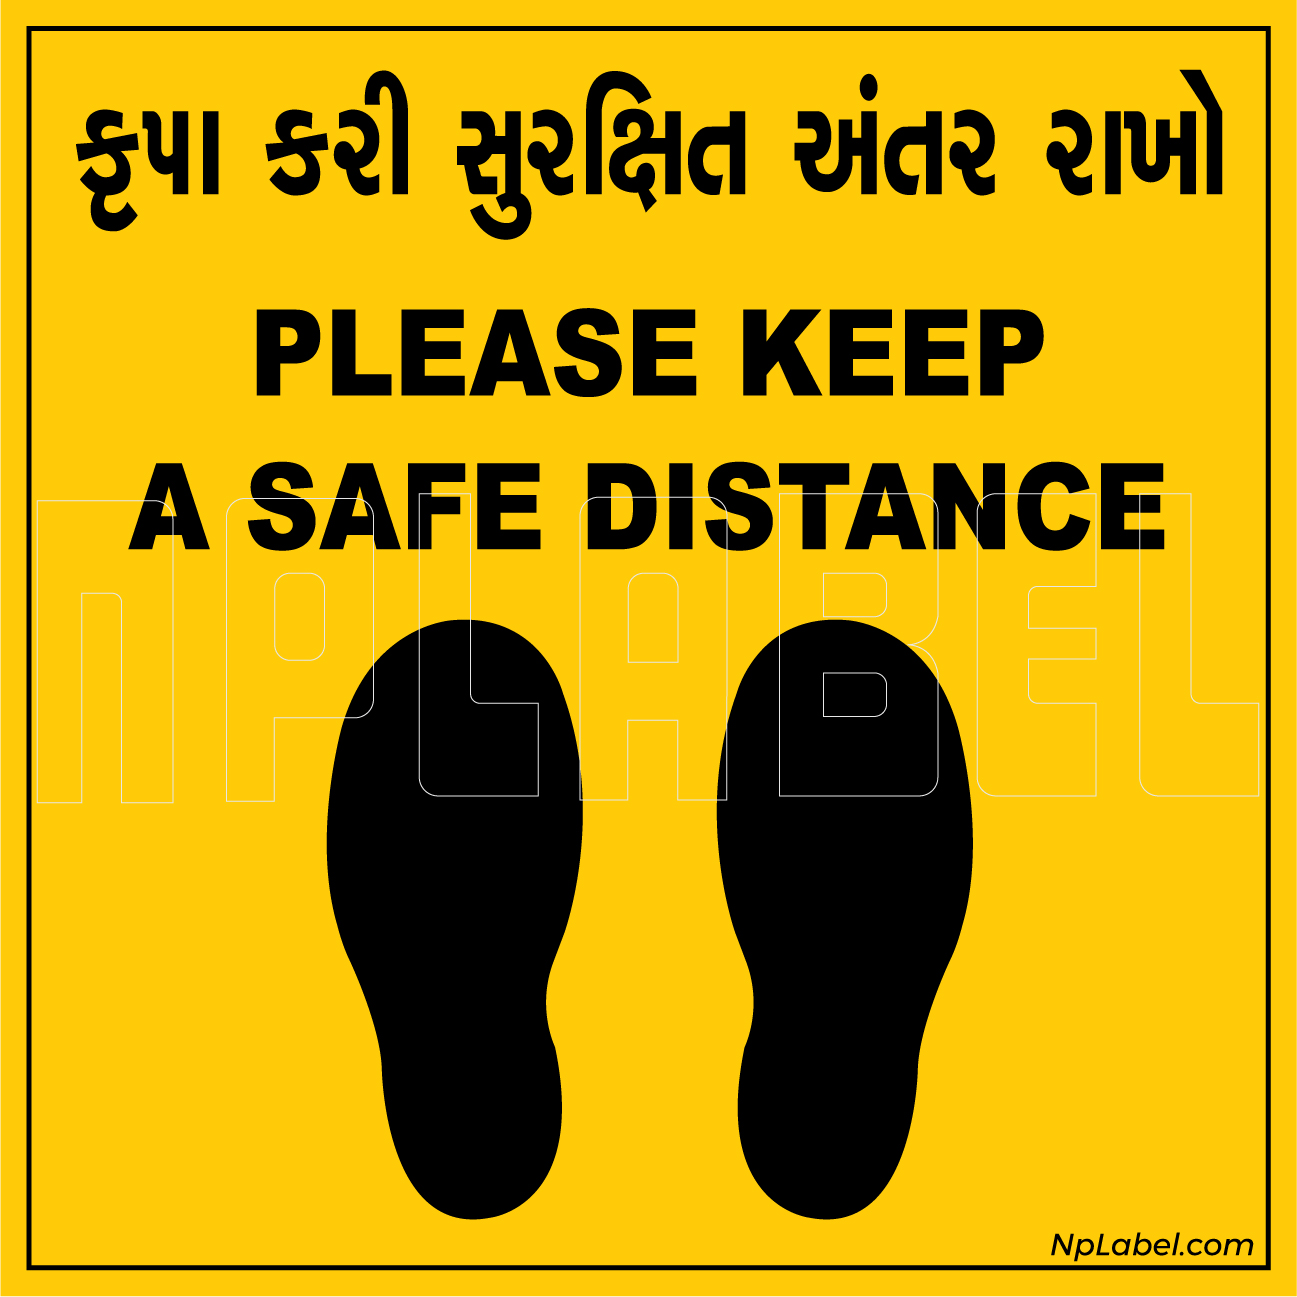 CD1964 Social Distance for 1 Person Gujarati - English Floor Sticker